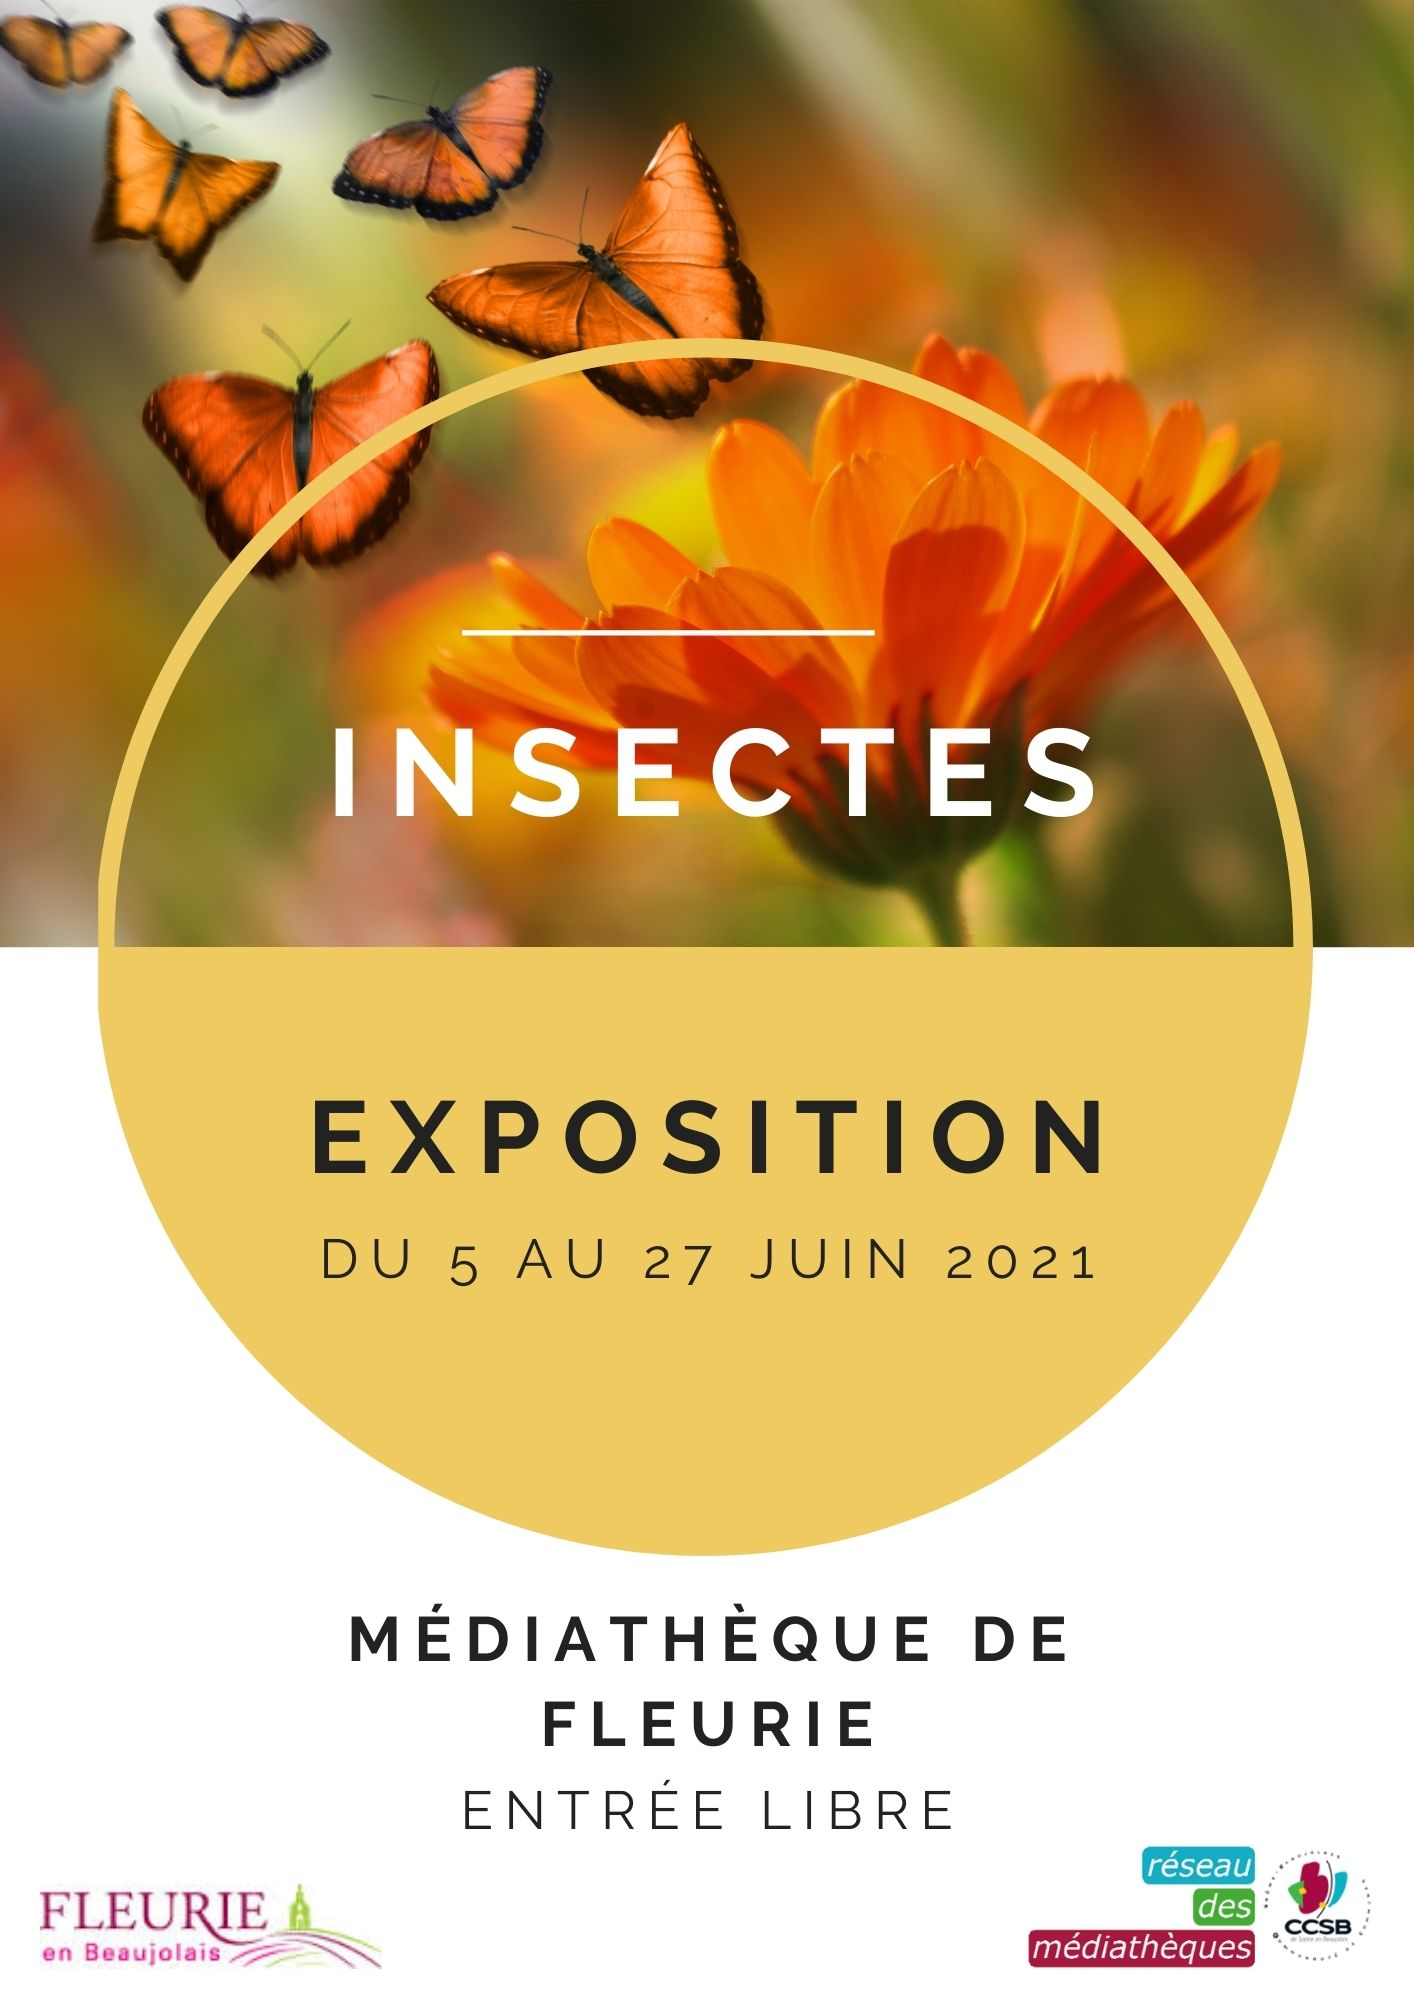 expo insectes.jpg